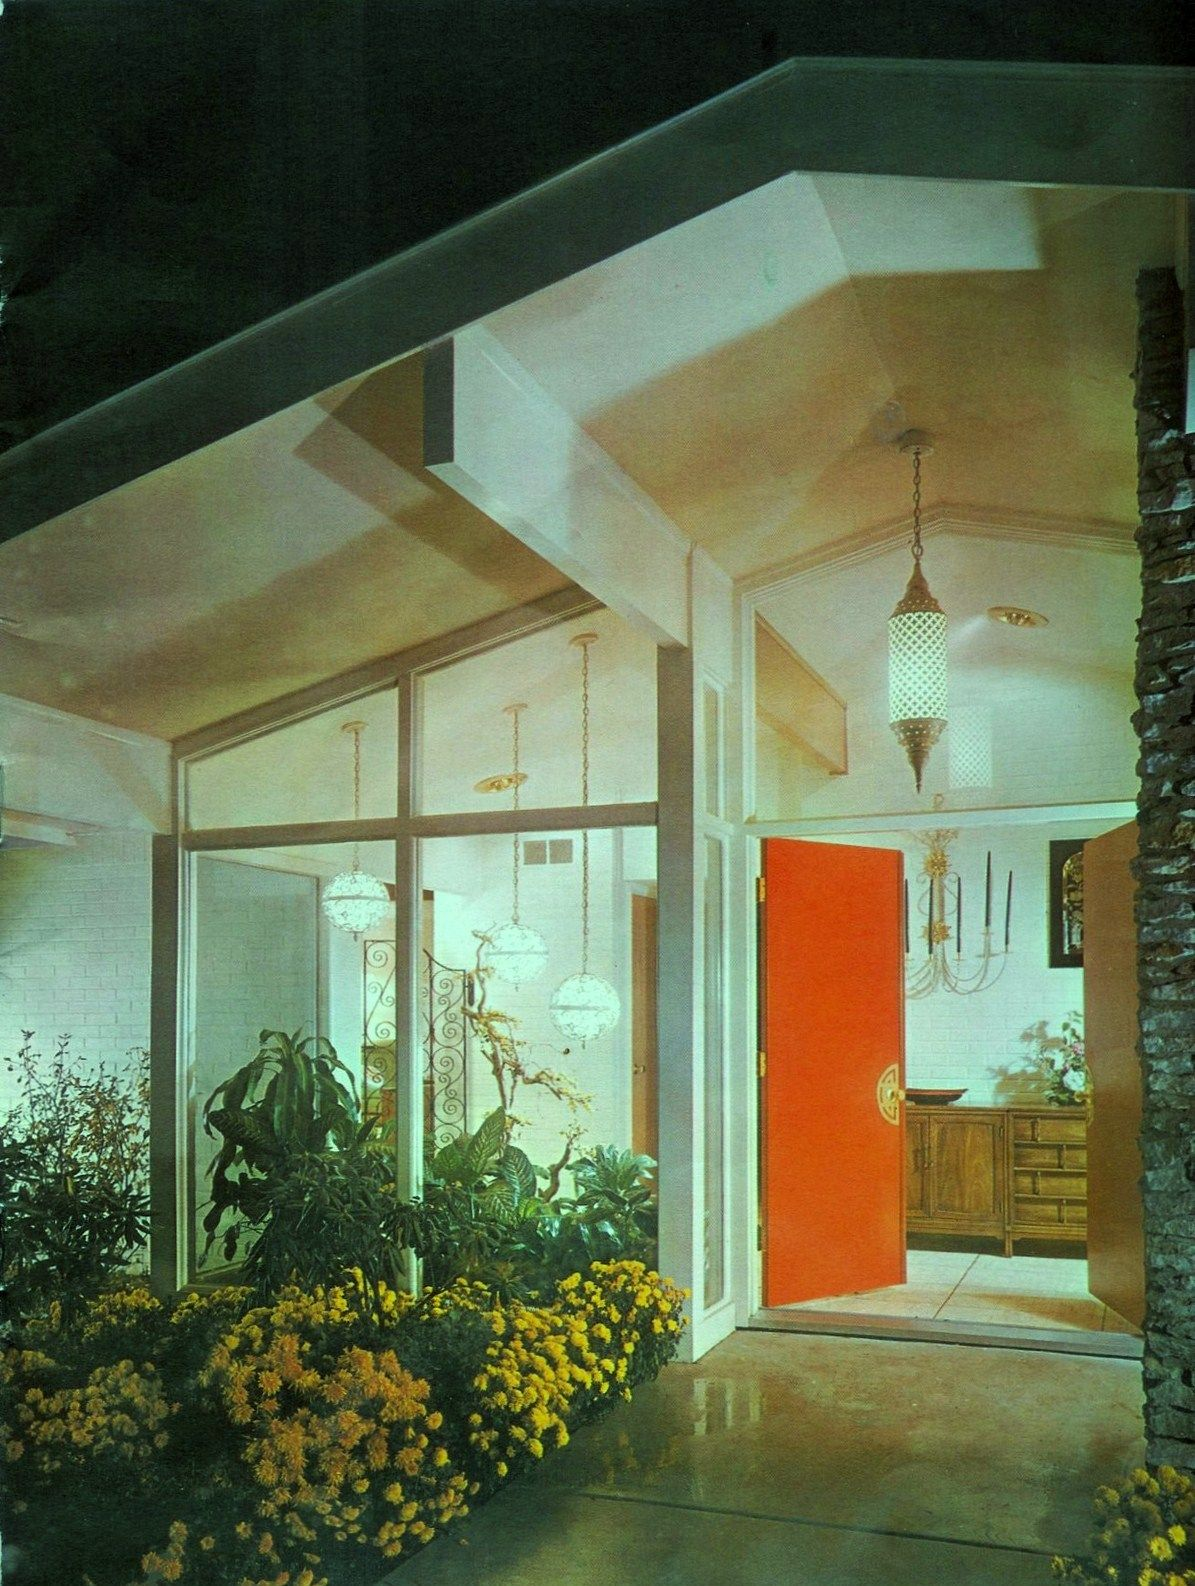 comely scholz home designs. Scholz home  1960 More Pinteres